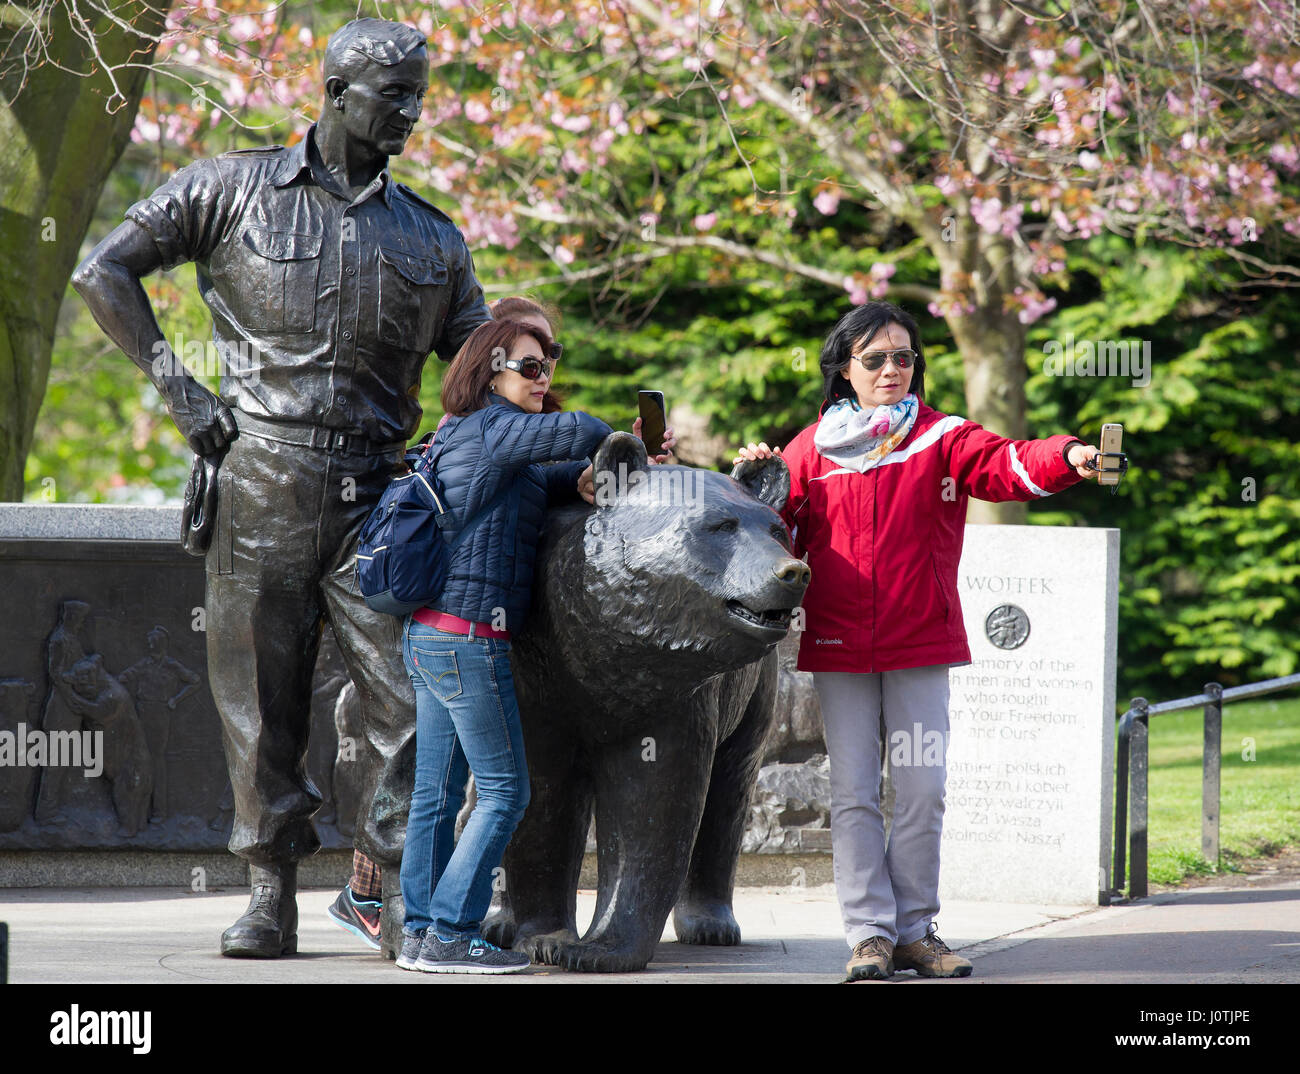 Wojtek the Soldier bear statue Princes Street Gardens Edinburgh Scotland April 2017. - Stock Image